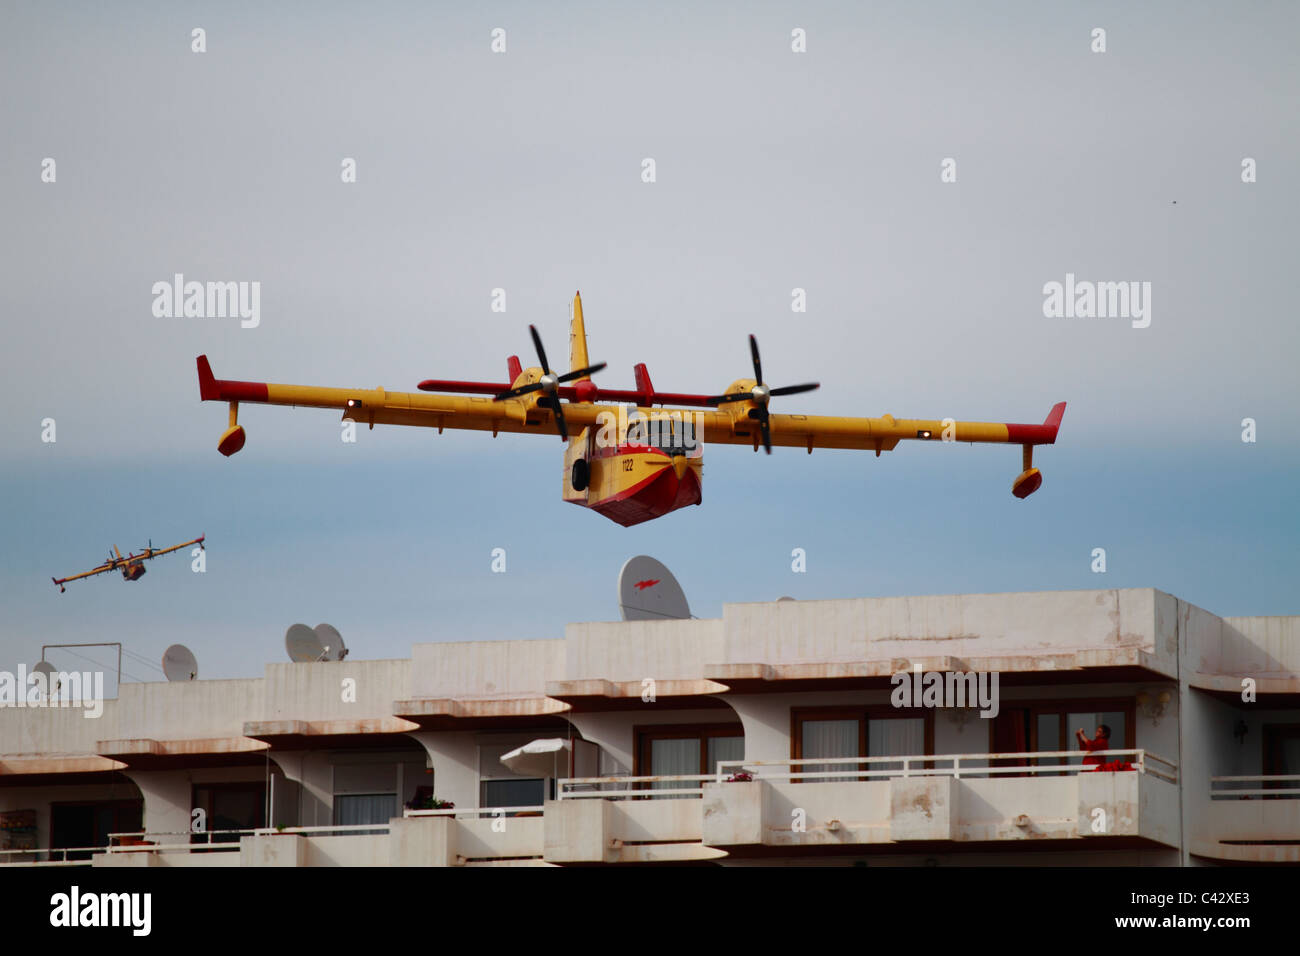 Canadair CL-145 firefighting plane in flight - Stock Image